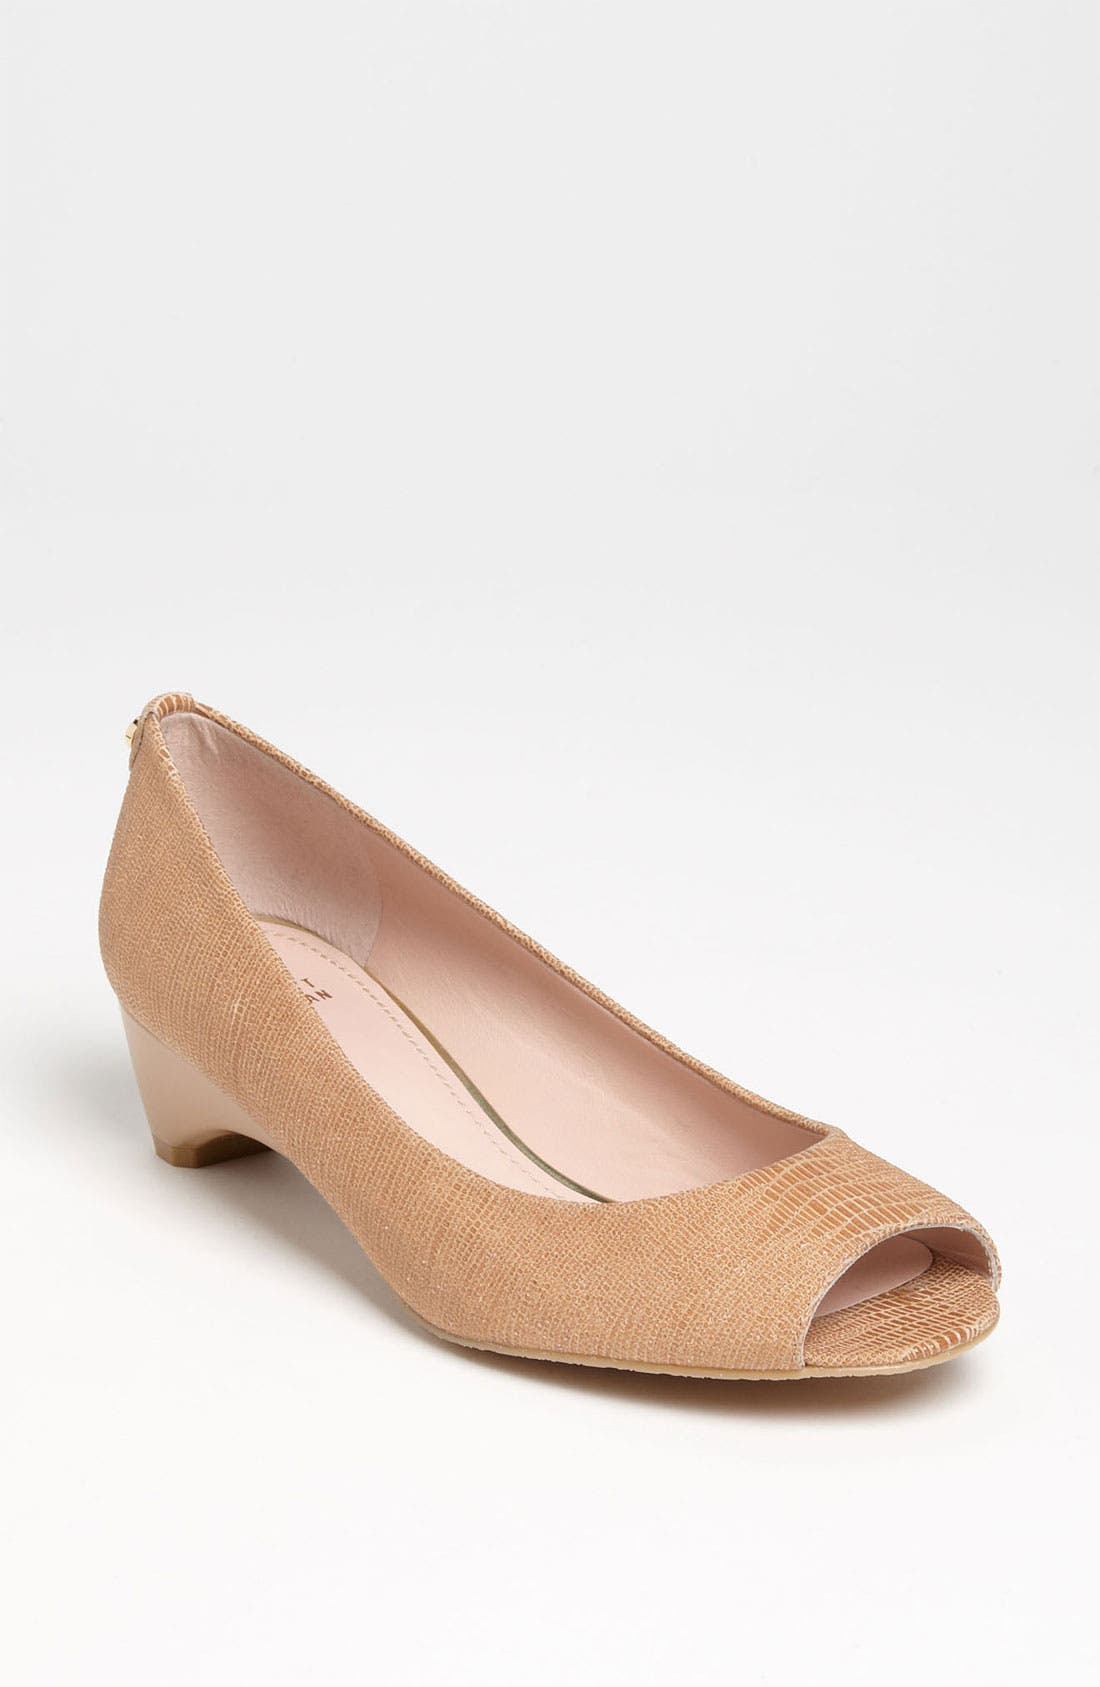 Alternate Image 1 Selected - Stuart Weitzman 'Logosavoir' Wedge Pump